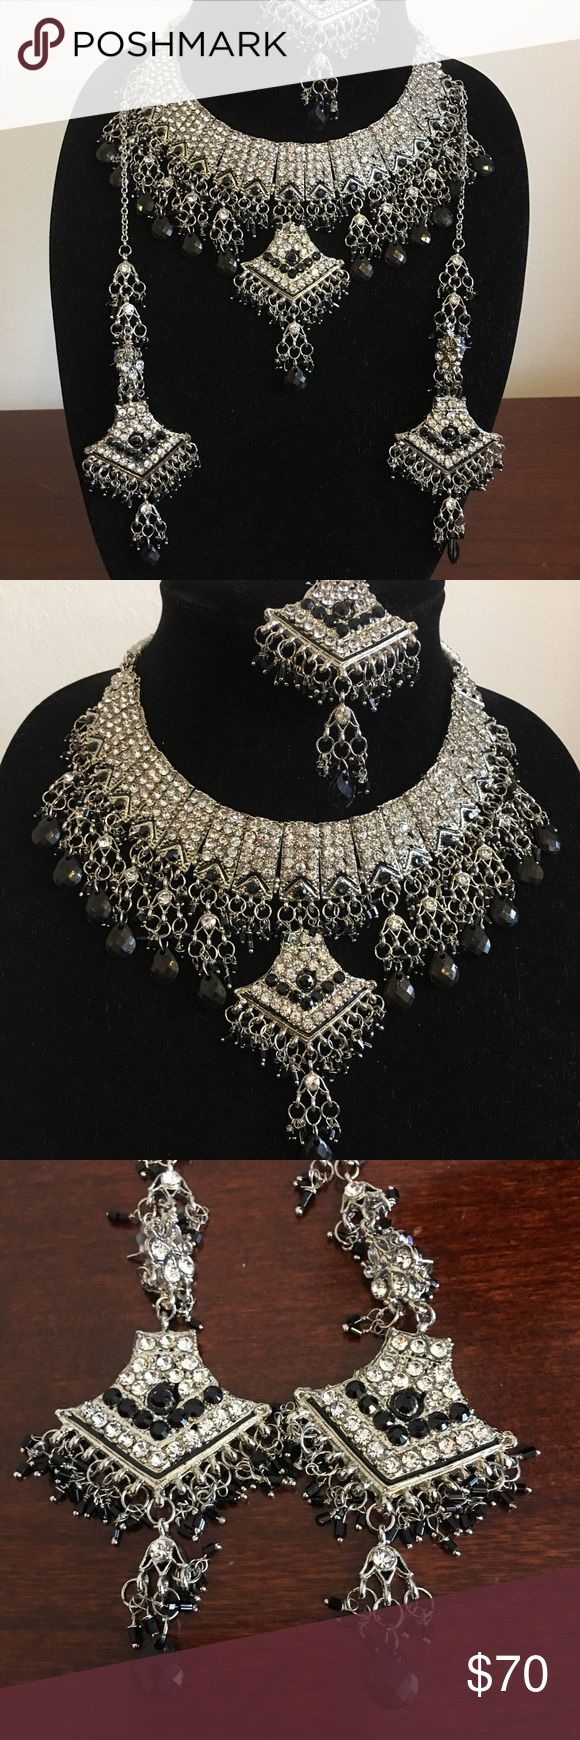 Indian/ Pakistani Jewelry Brand New Bollywood Inspired Jewelry Set- silver plated with black Necklace, earrings, and a head piece (tikka)   #fashion #indian #pakistani #bollywood #jewelry #necklace #earrings Jewelry Necklaces